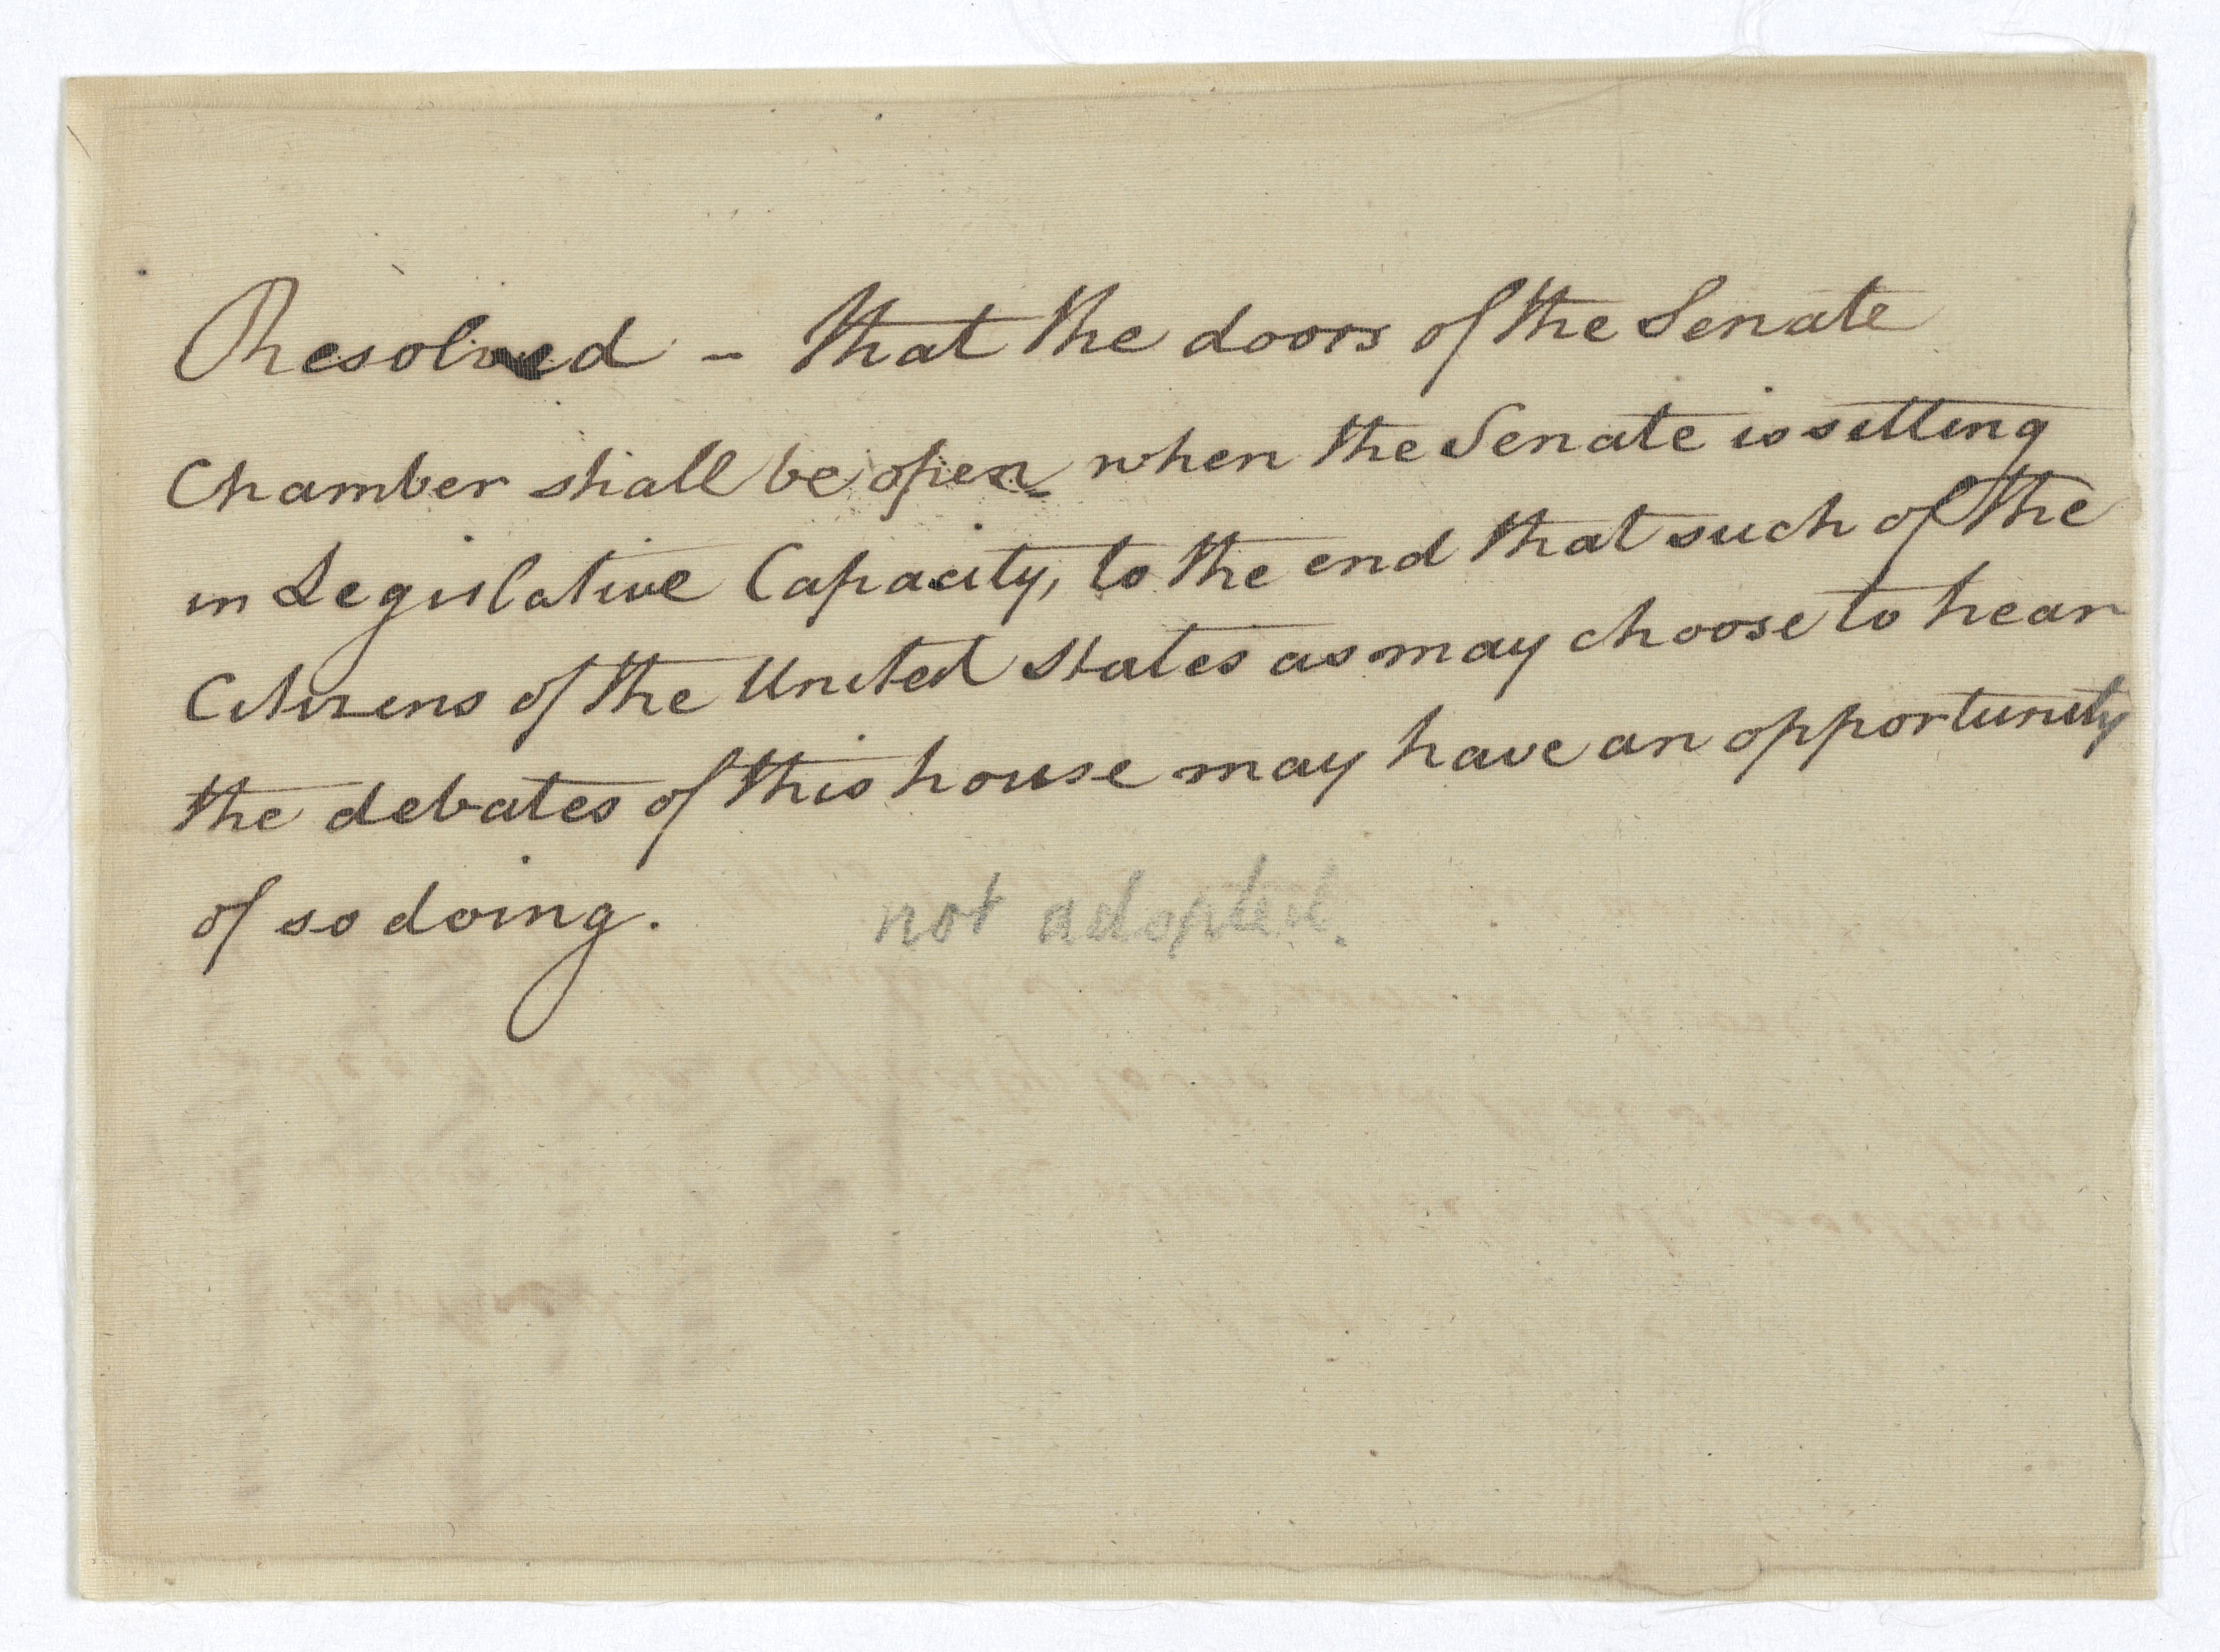 Resolution to Open the Doors of the Senate Chamber April 29 1790. (